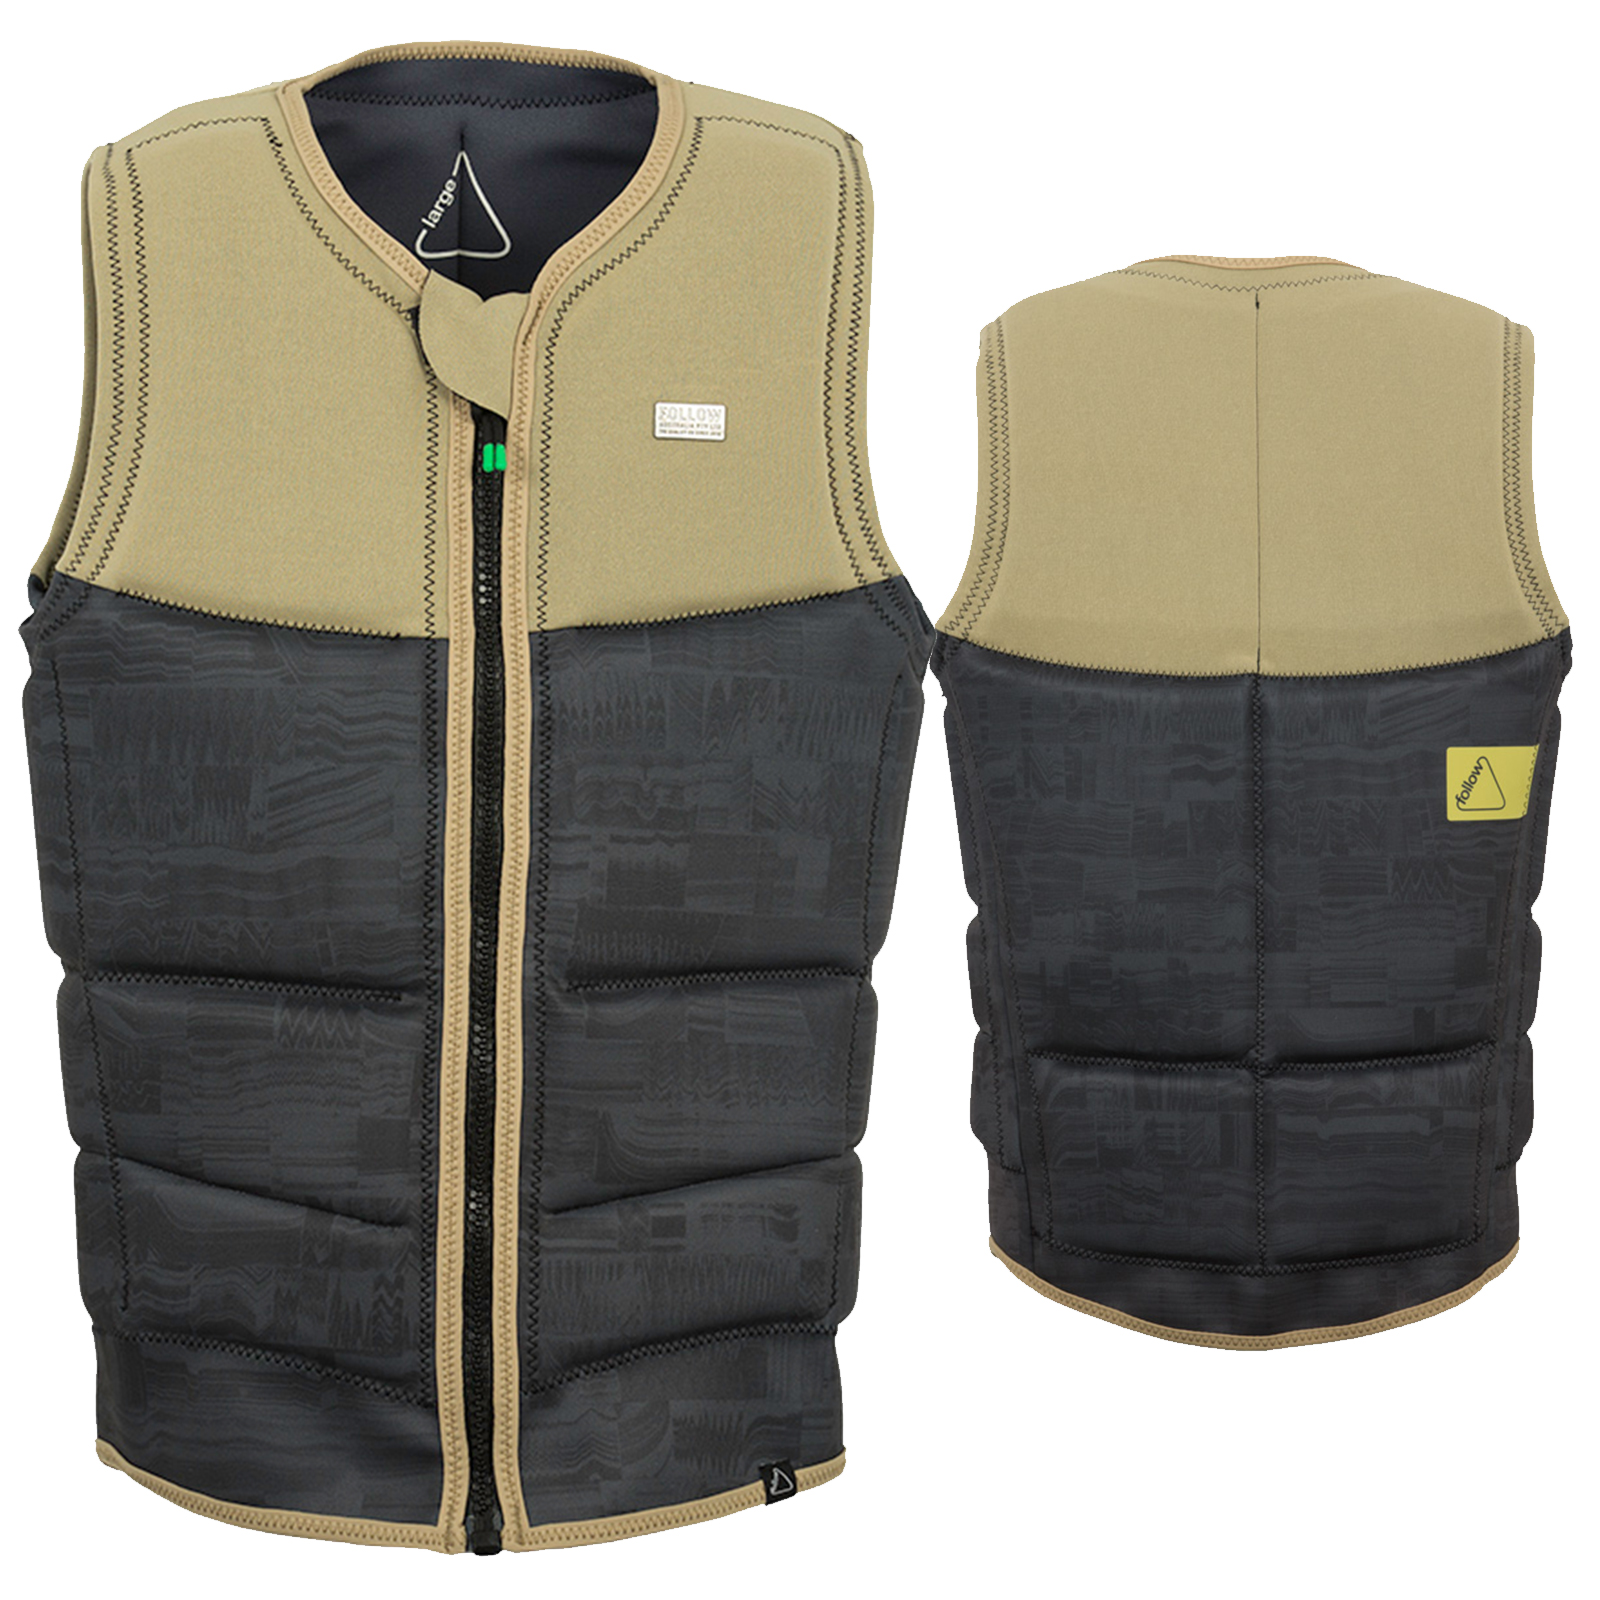 STOW COOK CE IMPACT VEST BLACK FOLLOW 2018